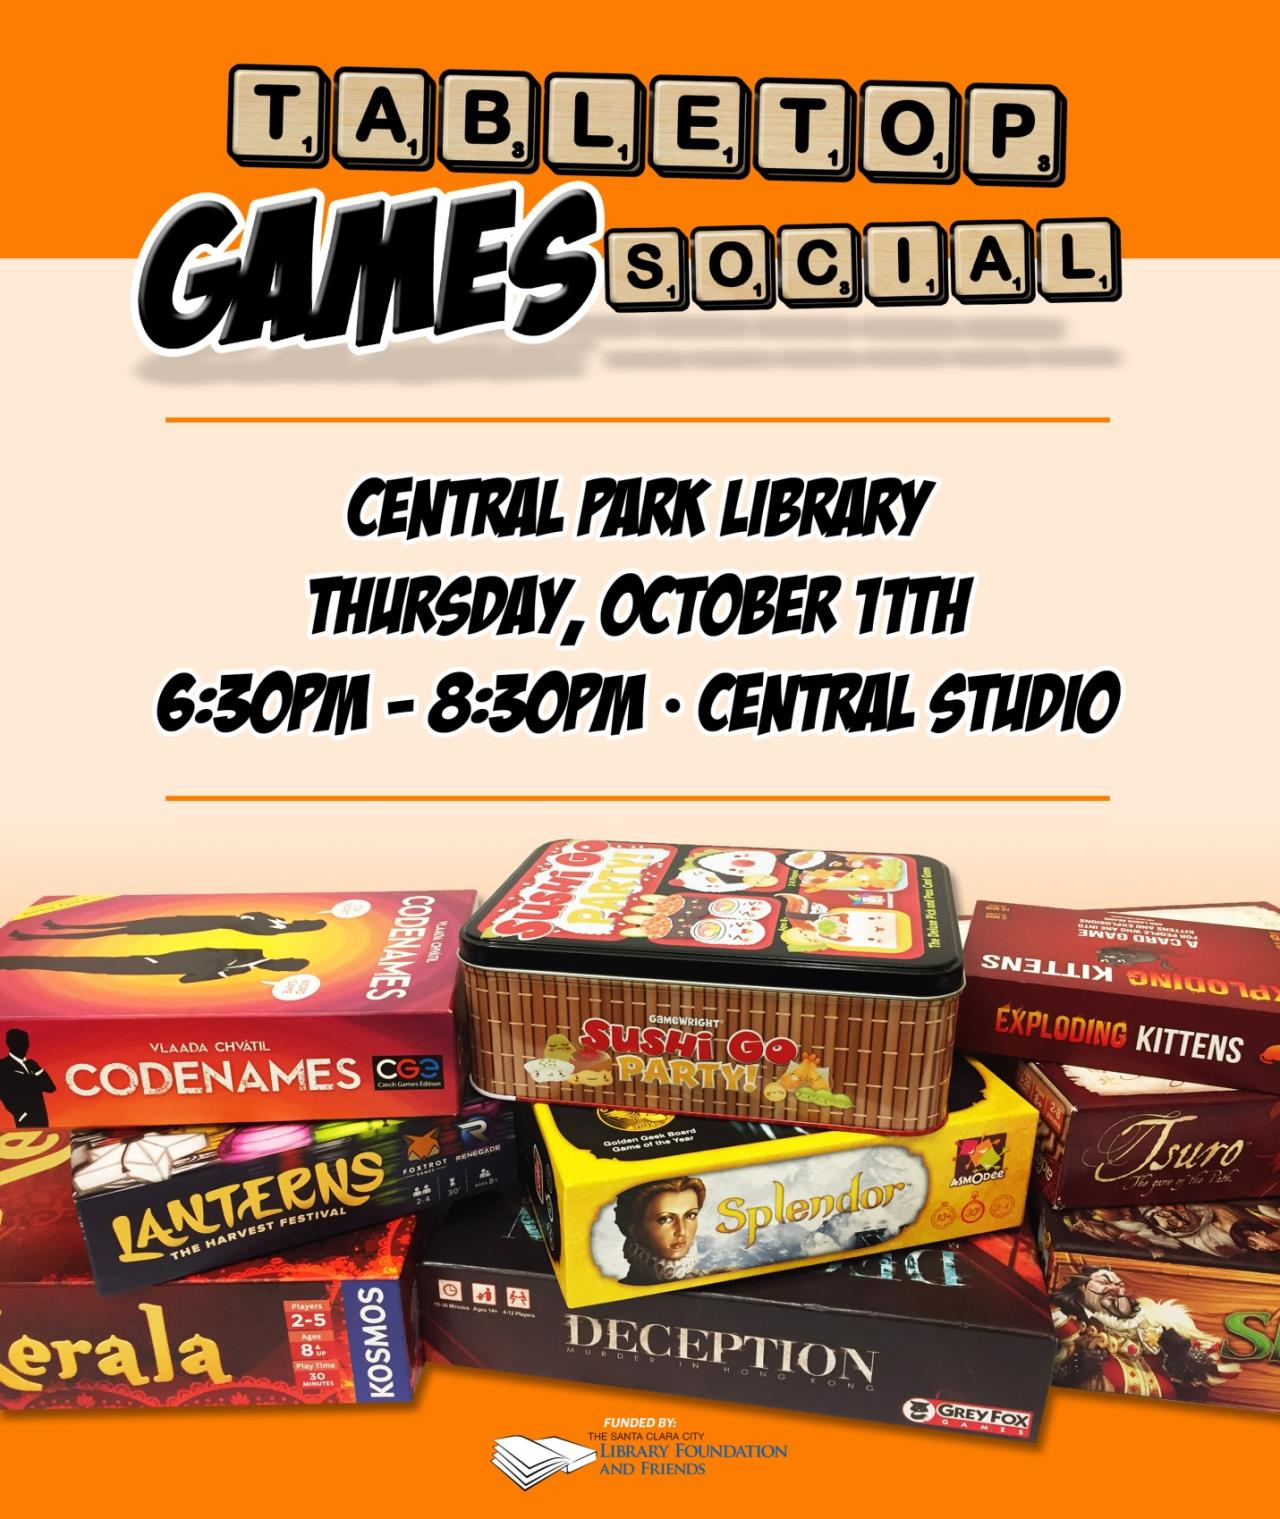 Tabletop games social, central park library, thursday October 11th, 6:30 to 8:30, central studios